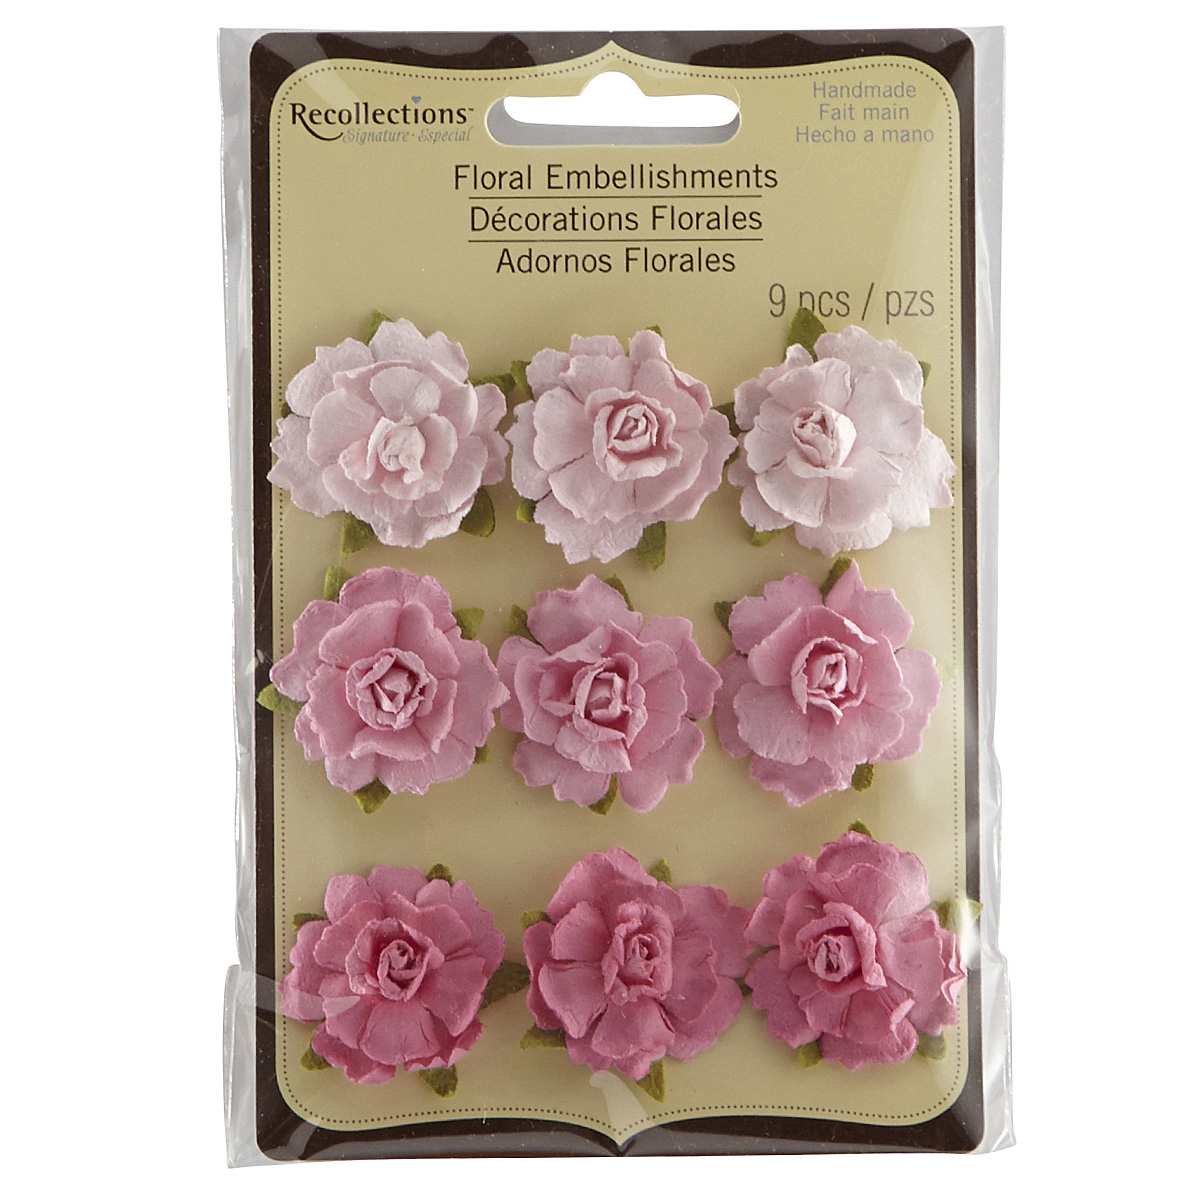 Recollections Signature Flower Embellishments